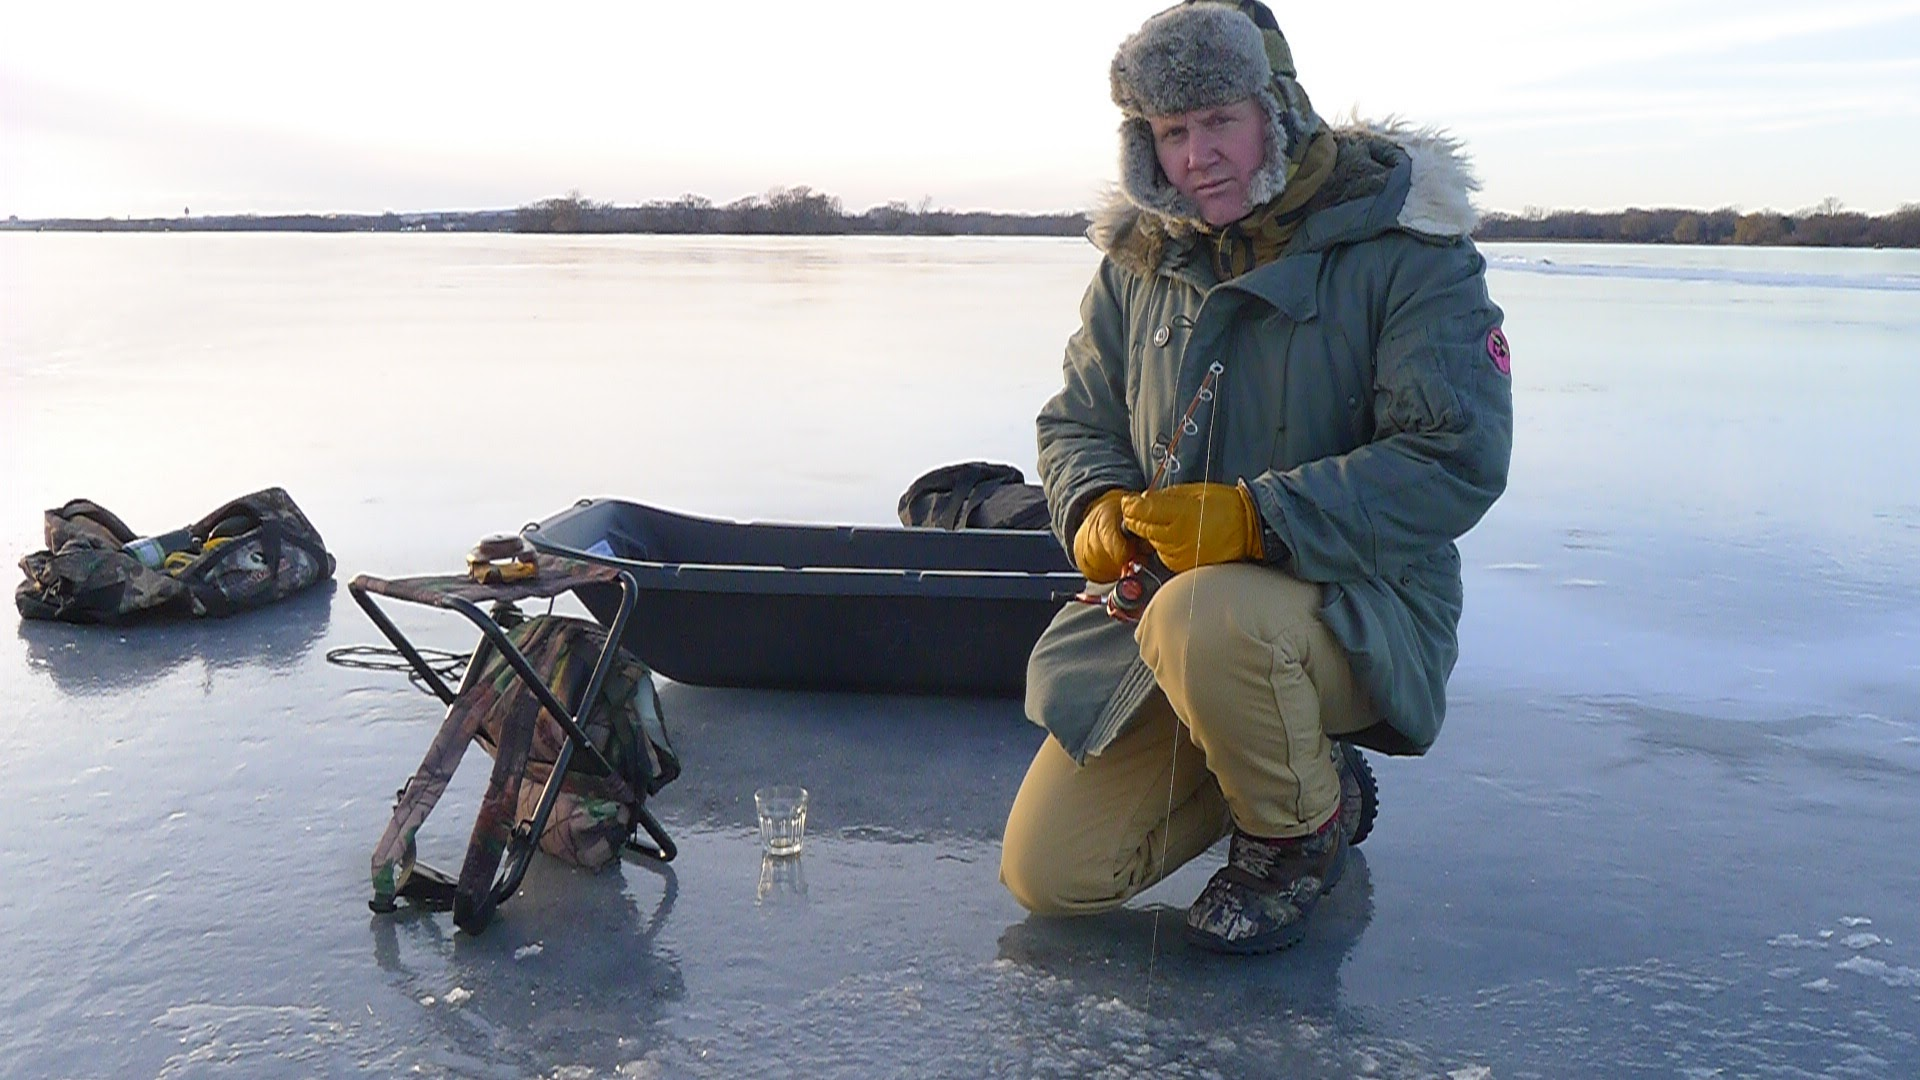 You intrepid GFR reporter tries his hand at a spot of ice fishing on the Bay of Quinte, apparently one of the very best places in Canada for Walleye. I have to admit that it was a little nerve-wracking. Who knew that one could ice fish on only three inches of ice? Thank goodness for the tumblers of whisky.